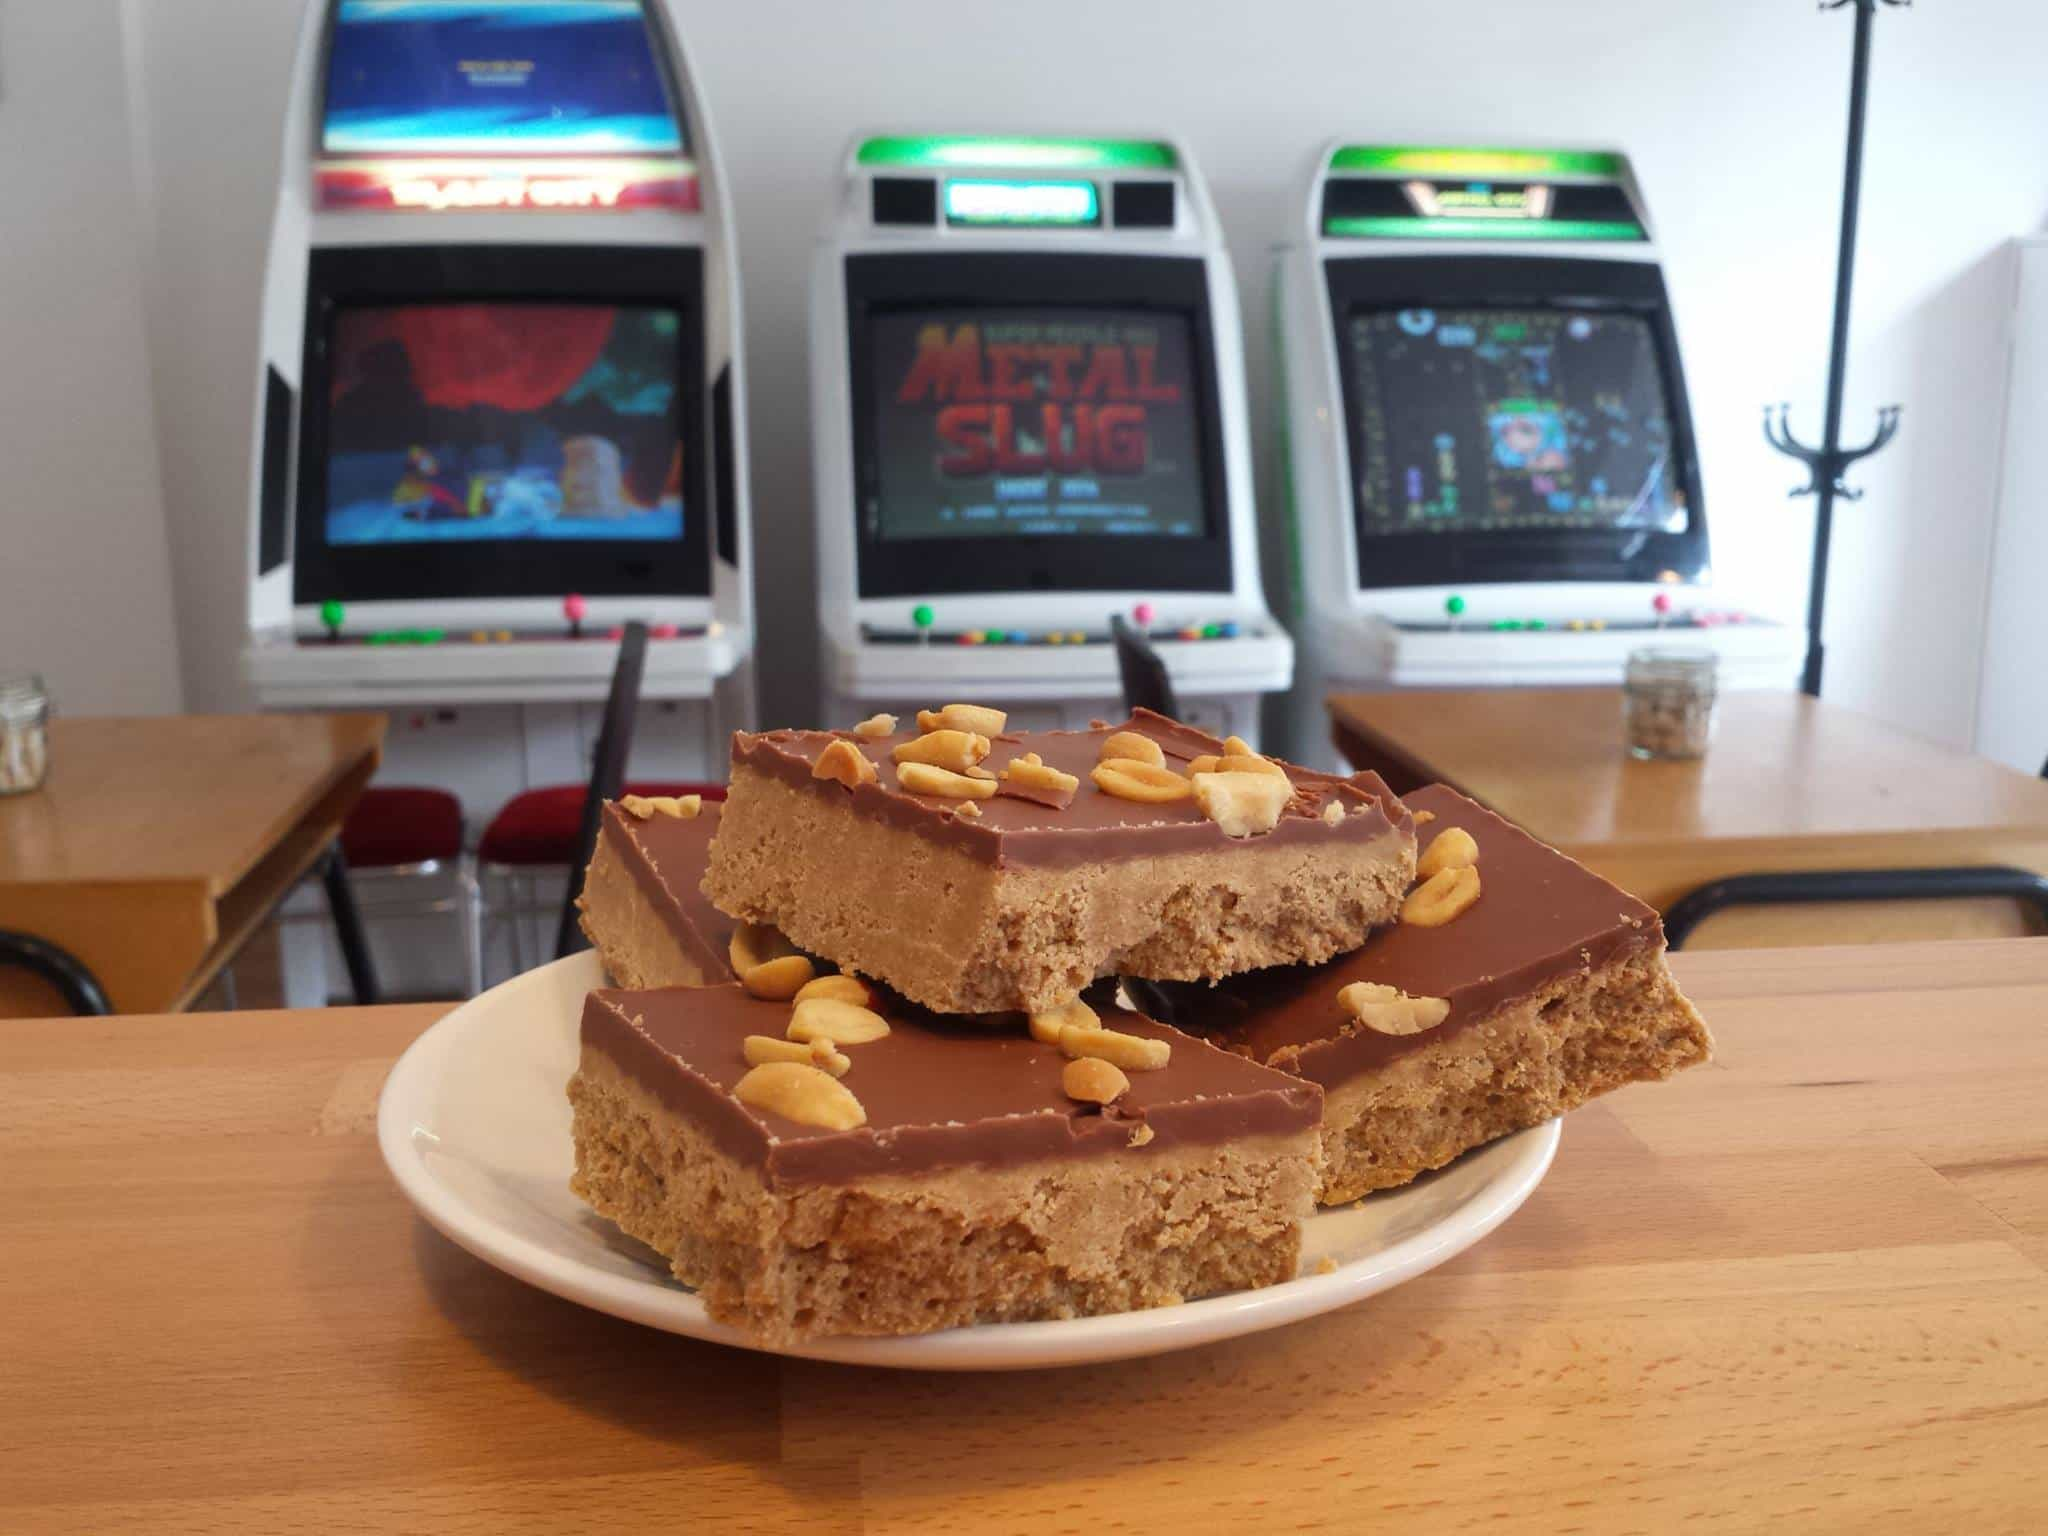 Konbo, Edinburgh's first arcade café has opened!